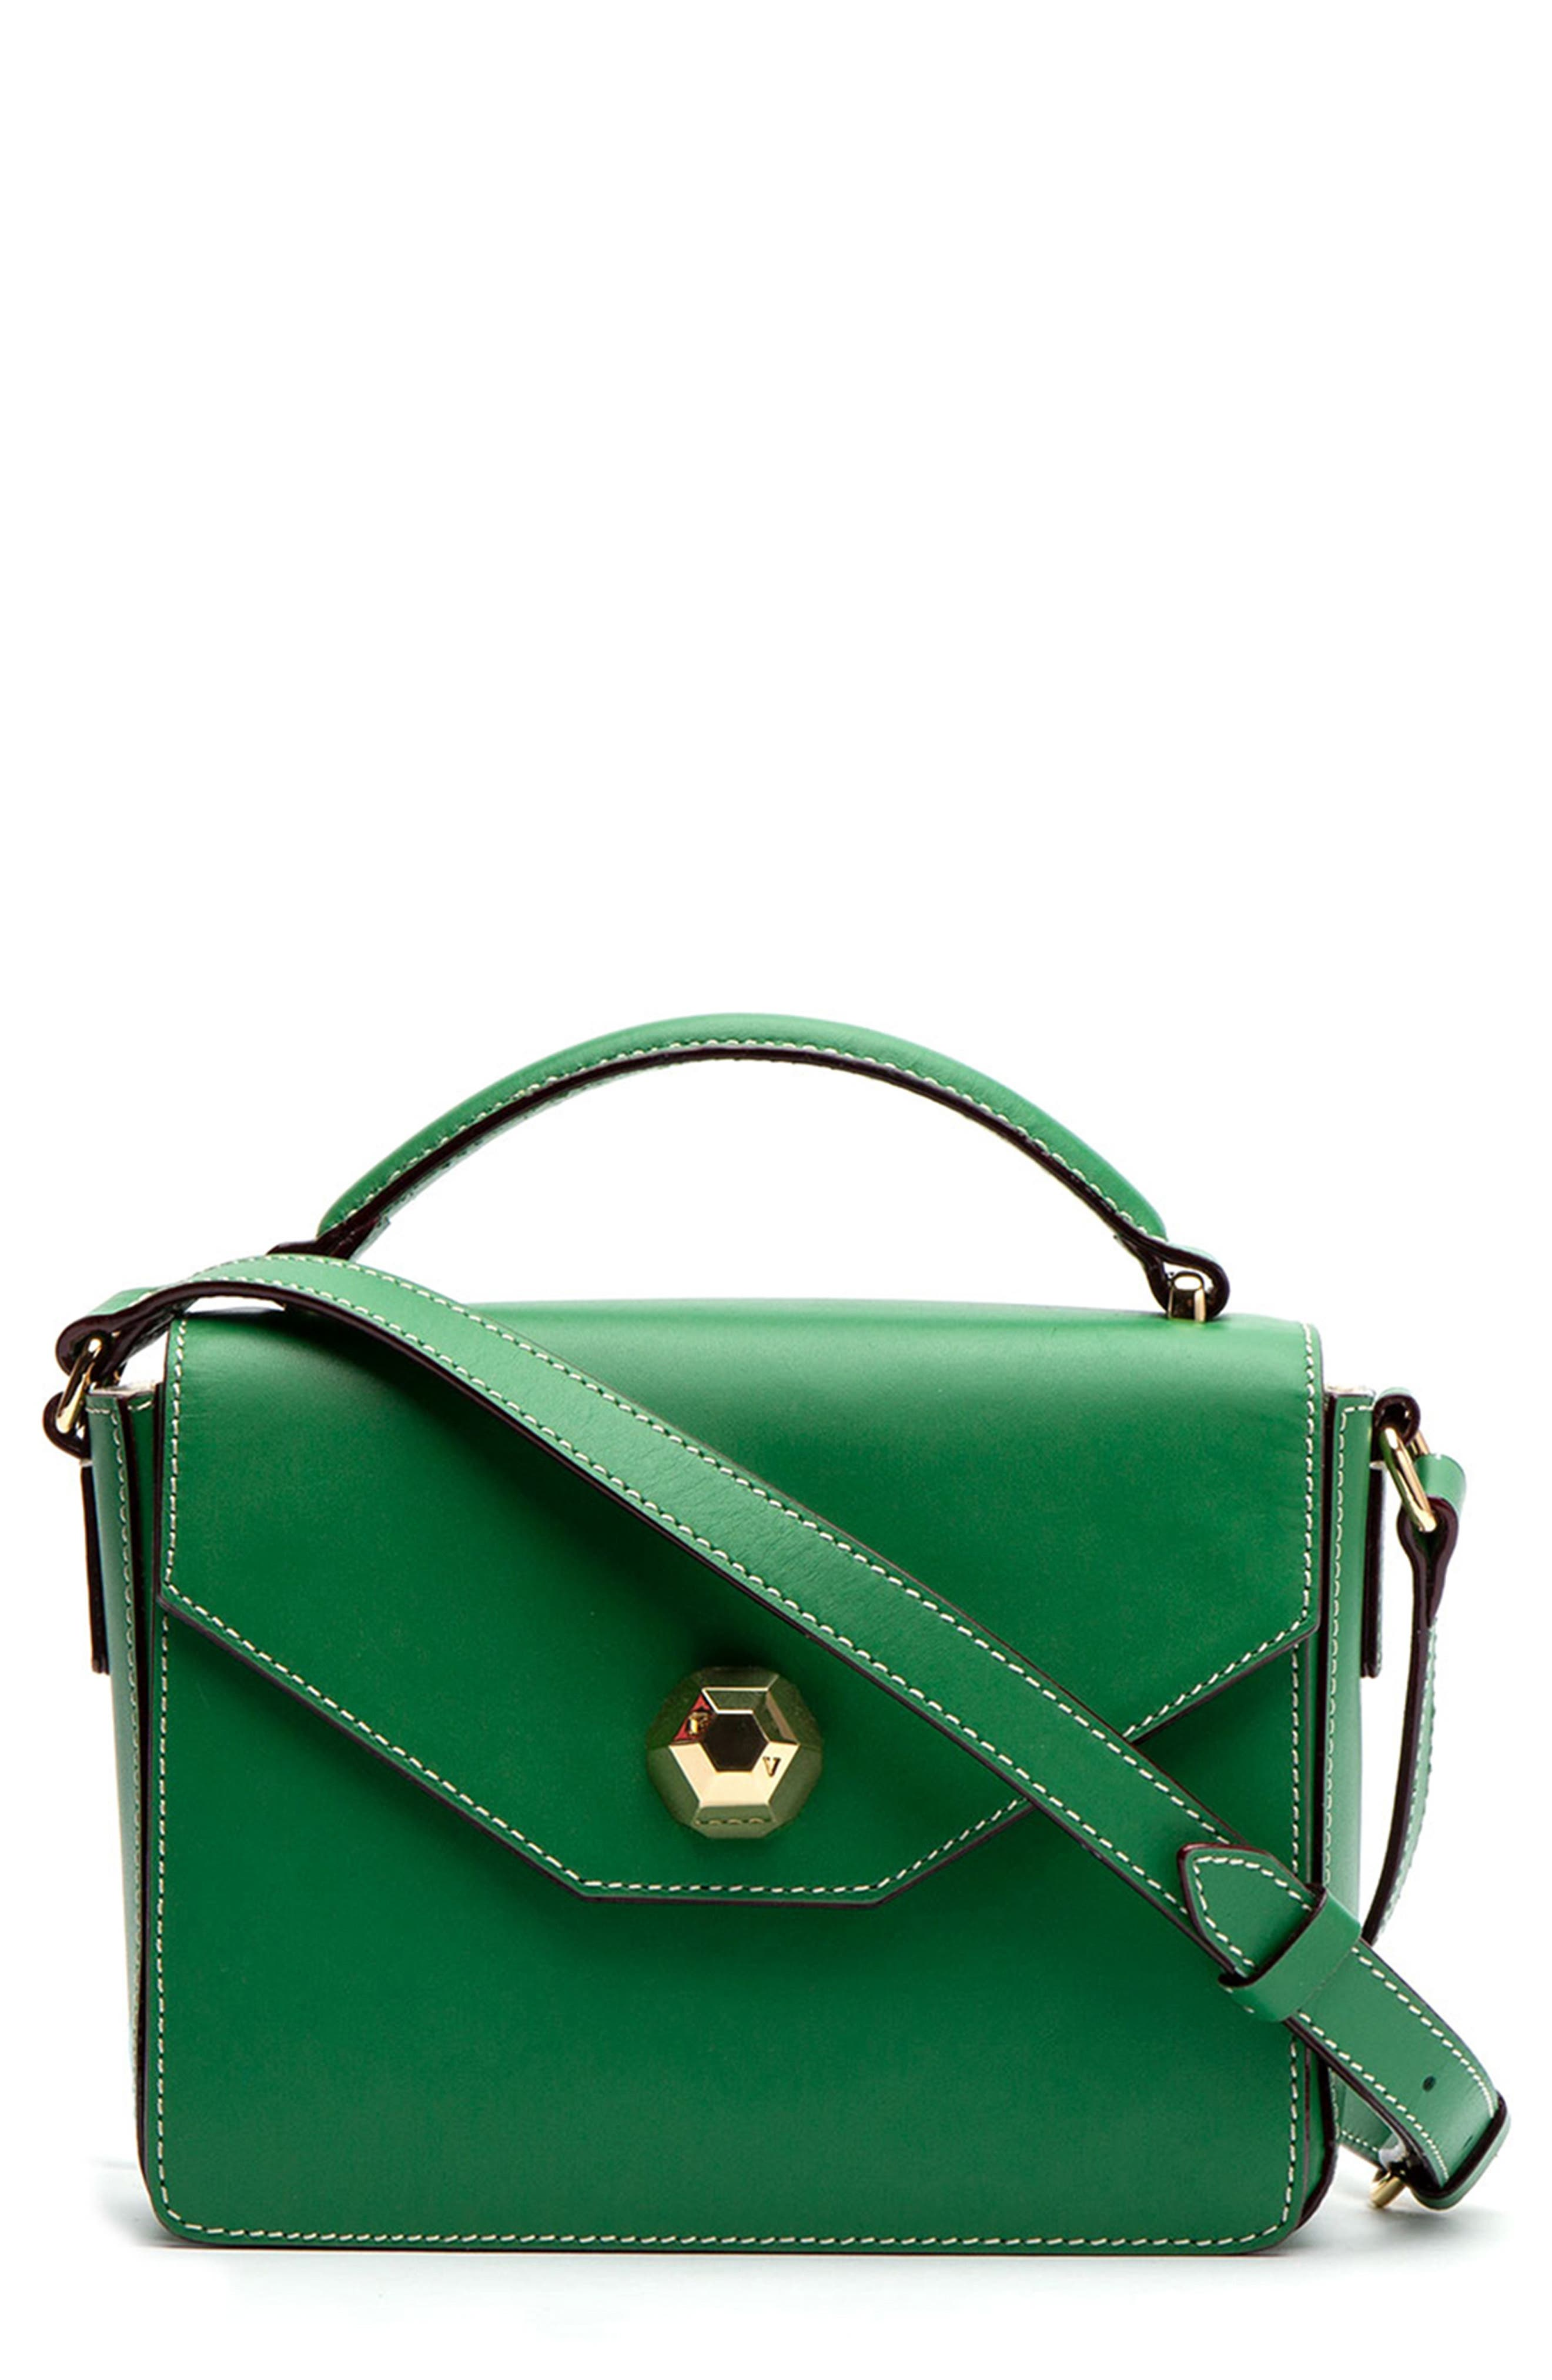 FRANCES VALENTINE Mini Midge Leather Crossbody Bag - Green in Green Ray